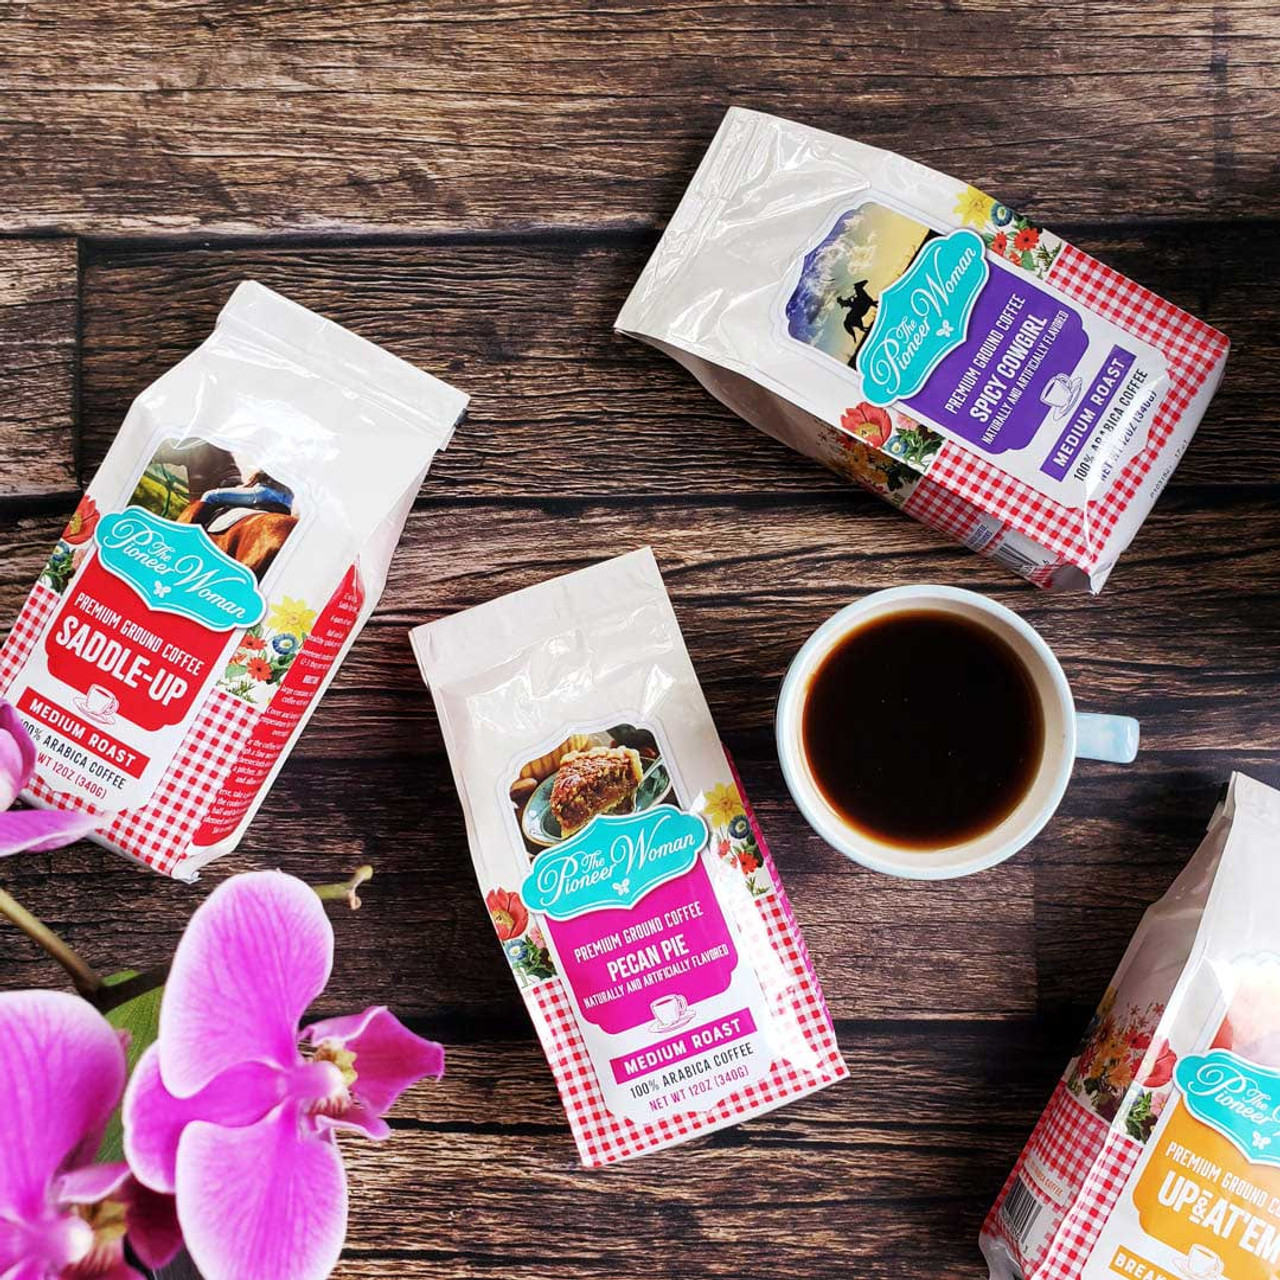 Spicy Cowgirl Flavored Ground Coffee By The Pioneer Woman